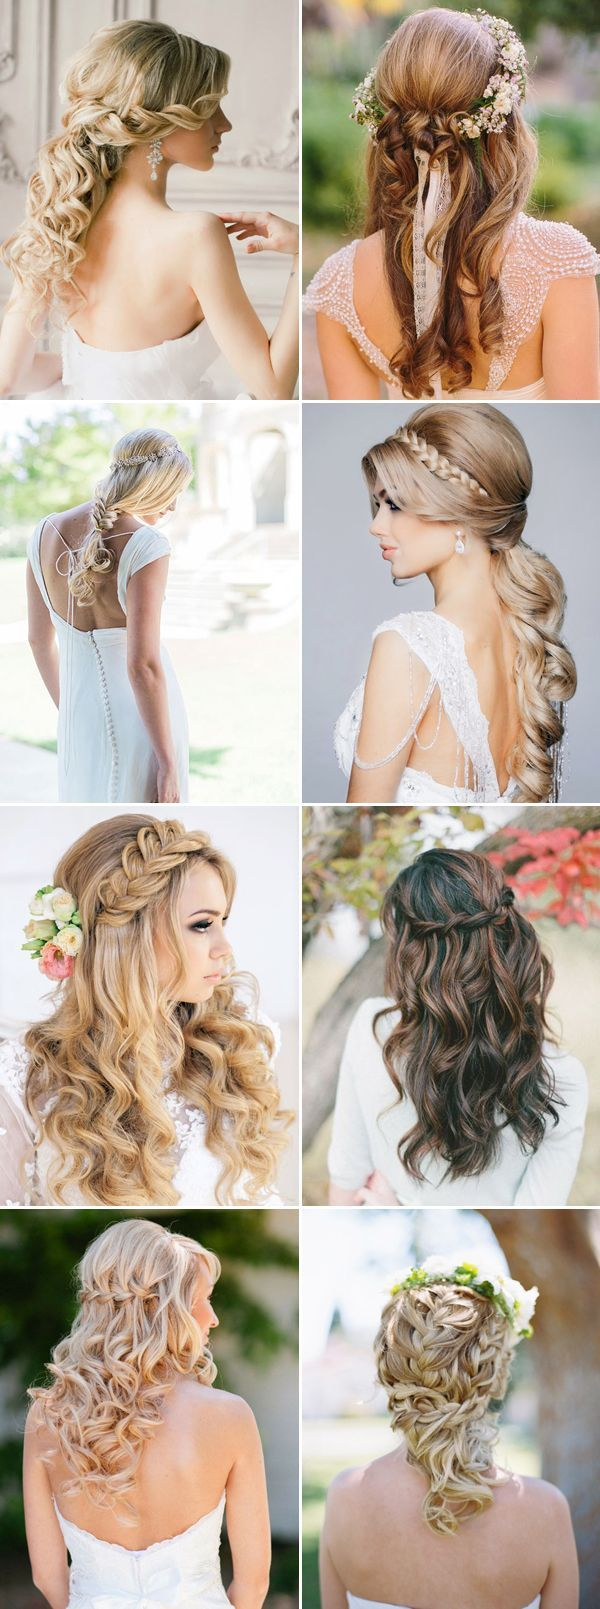 Half Up Half Down Wedding Hairstyles Pictures Photos and Images for Facebook Tumblr